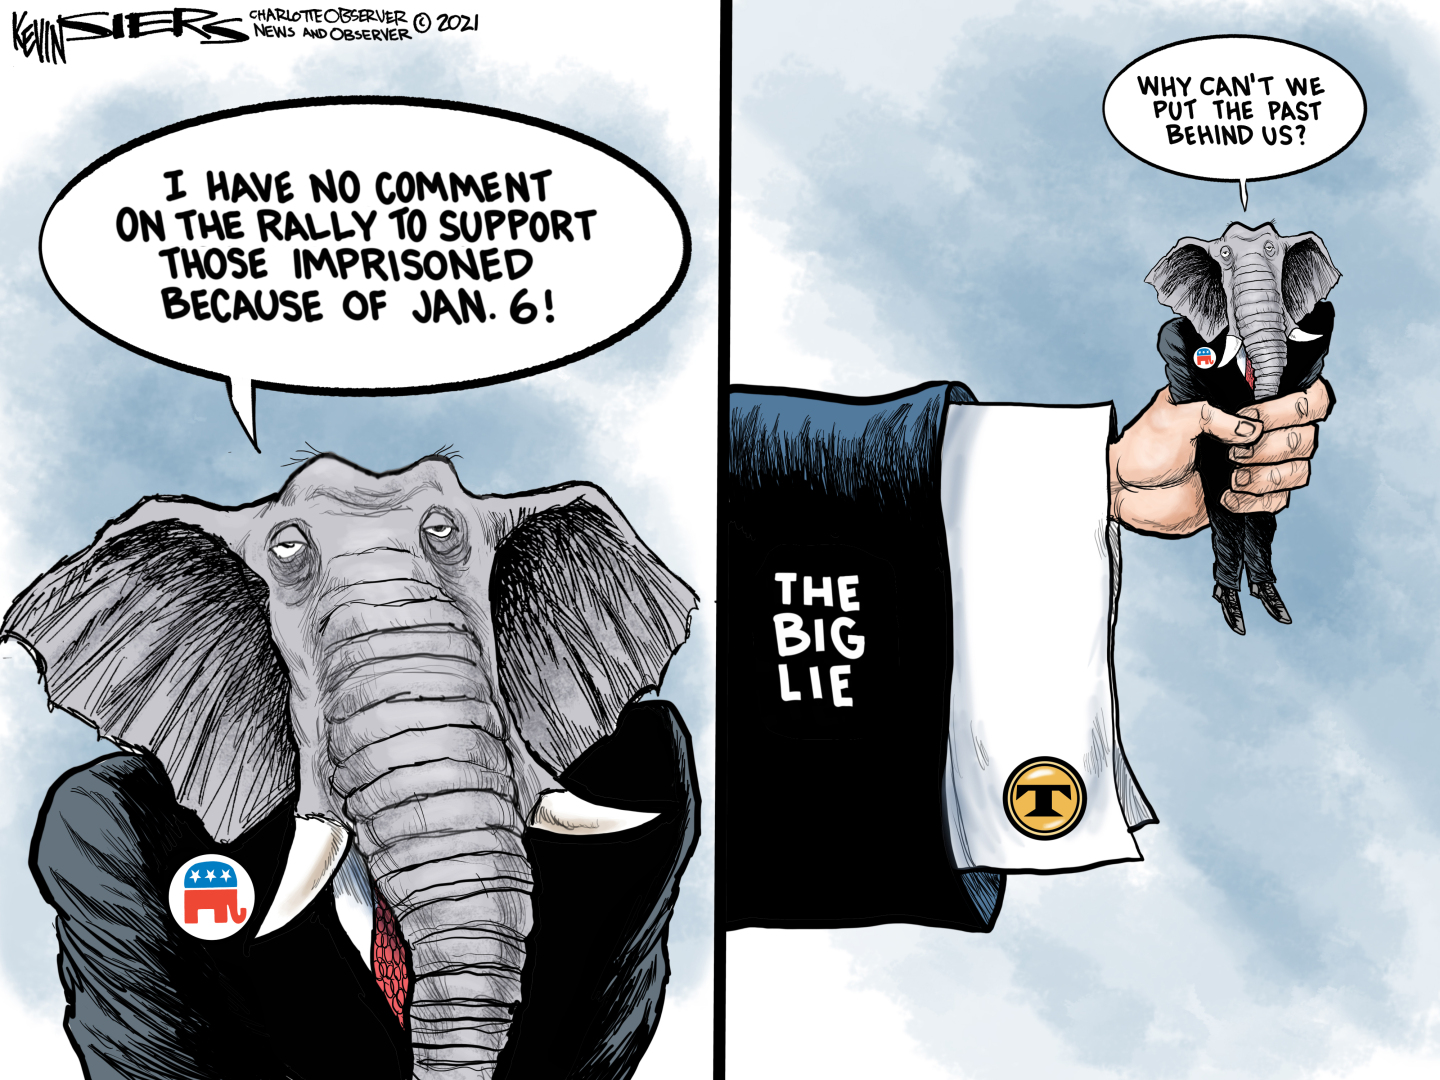 Republicans refuse to talk about th Jan 6th insurrection in Washington DC because they are trapped in the 'Big Lie'.